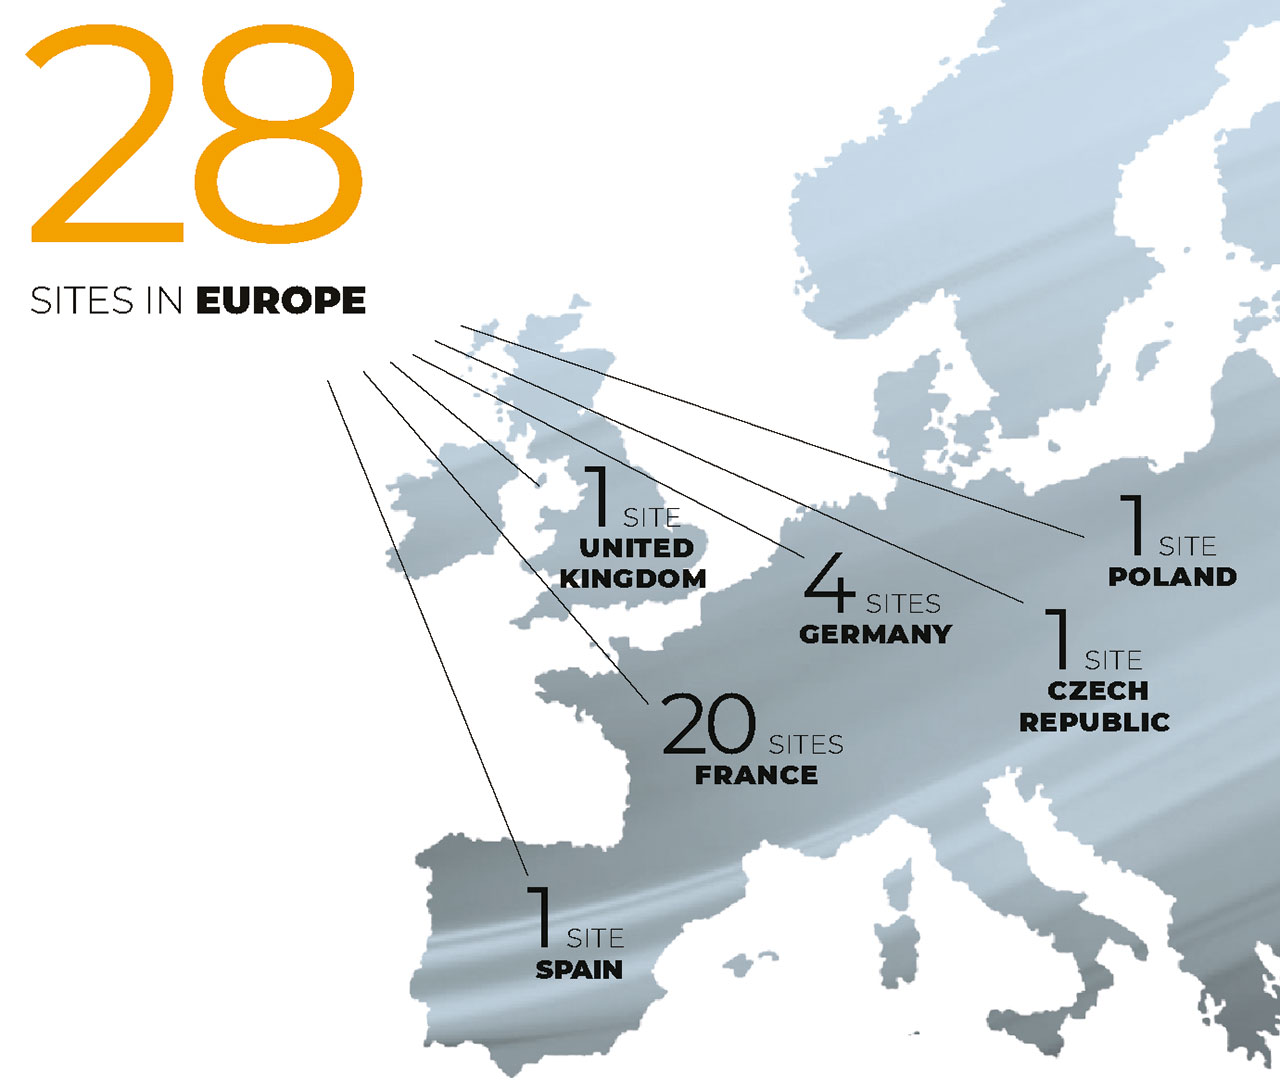 28 sites in Europe